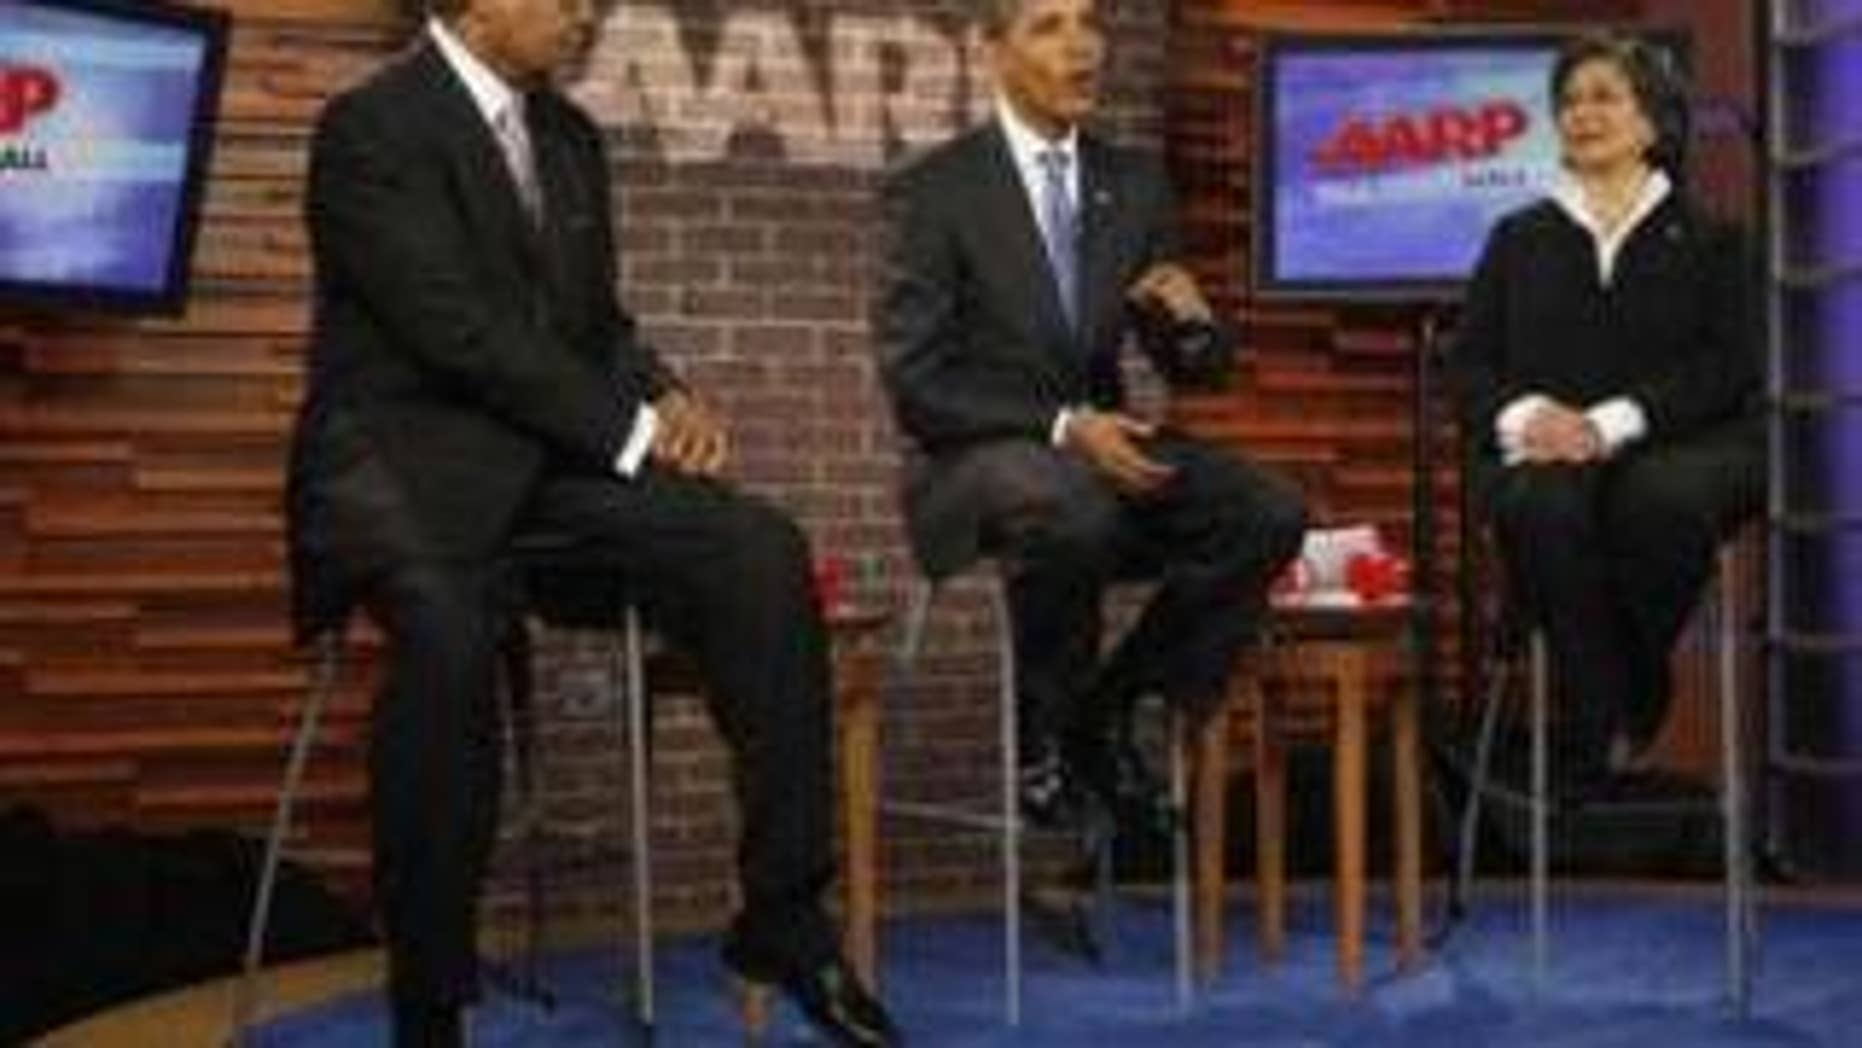 AARP Faces Backlash From Seniors Over Health Care Reform ...